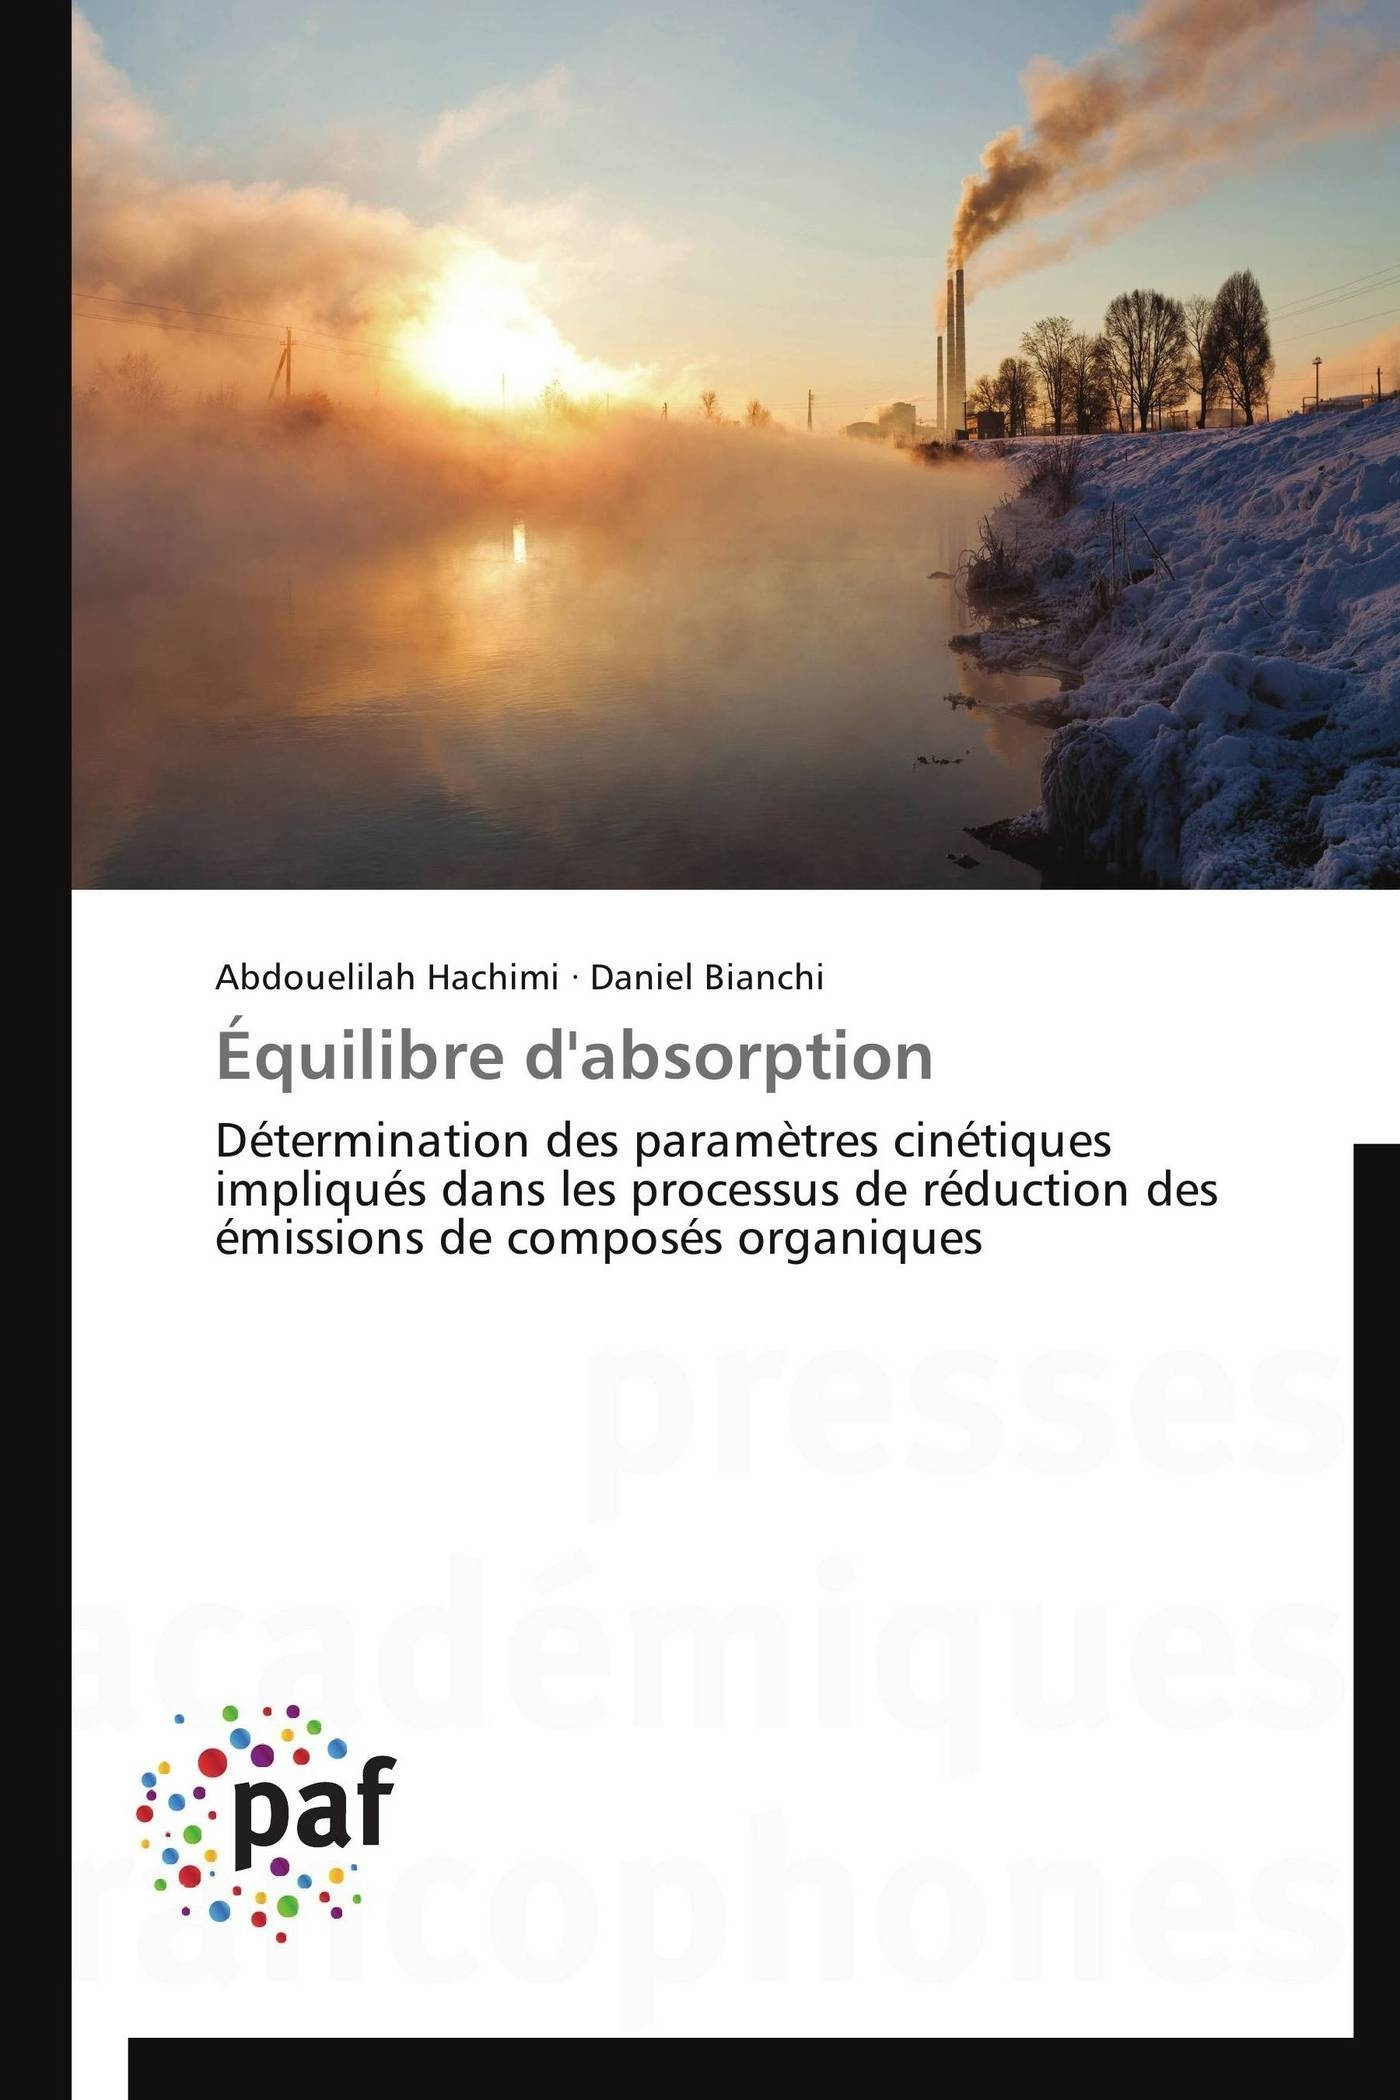 EQUILIBRE D'ABSORPTION